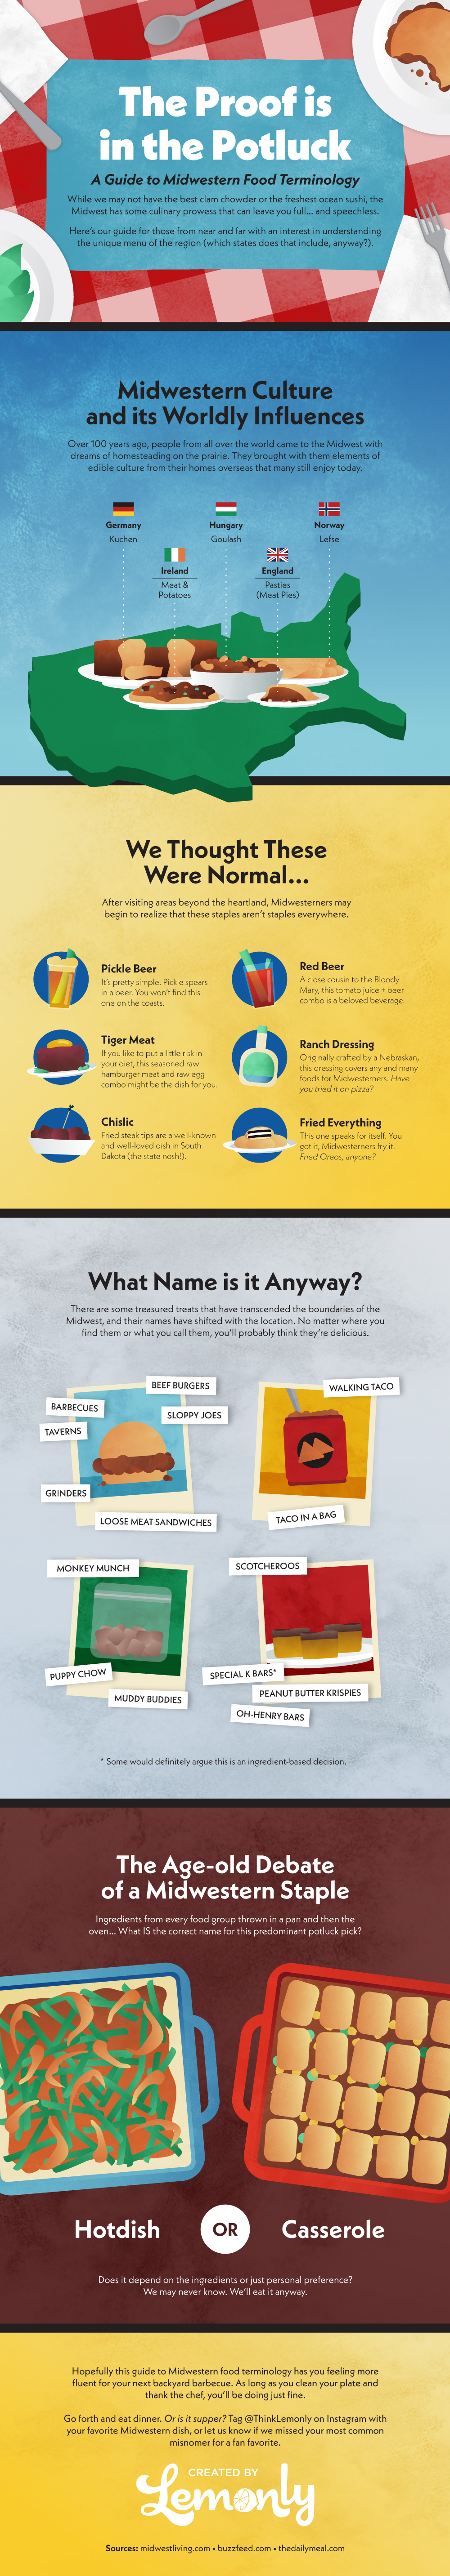 Infographic: The Proof is in the Potluck: A Guide to Midwestern Food Terminology